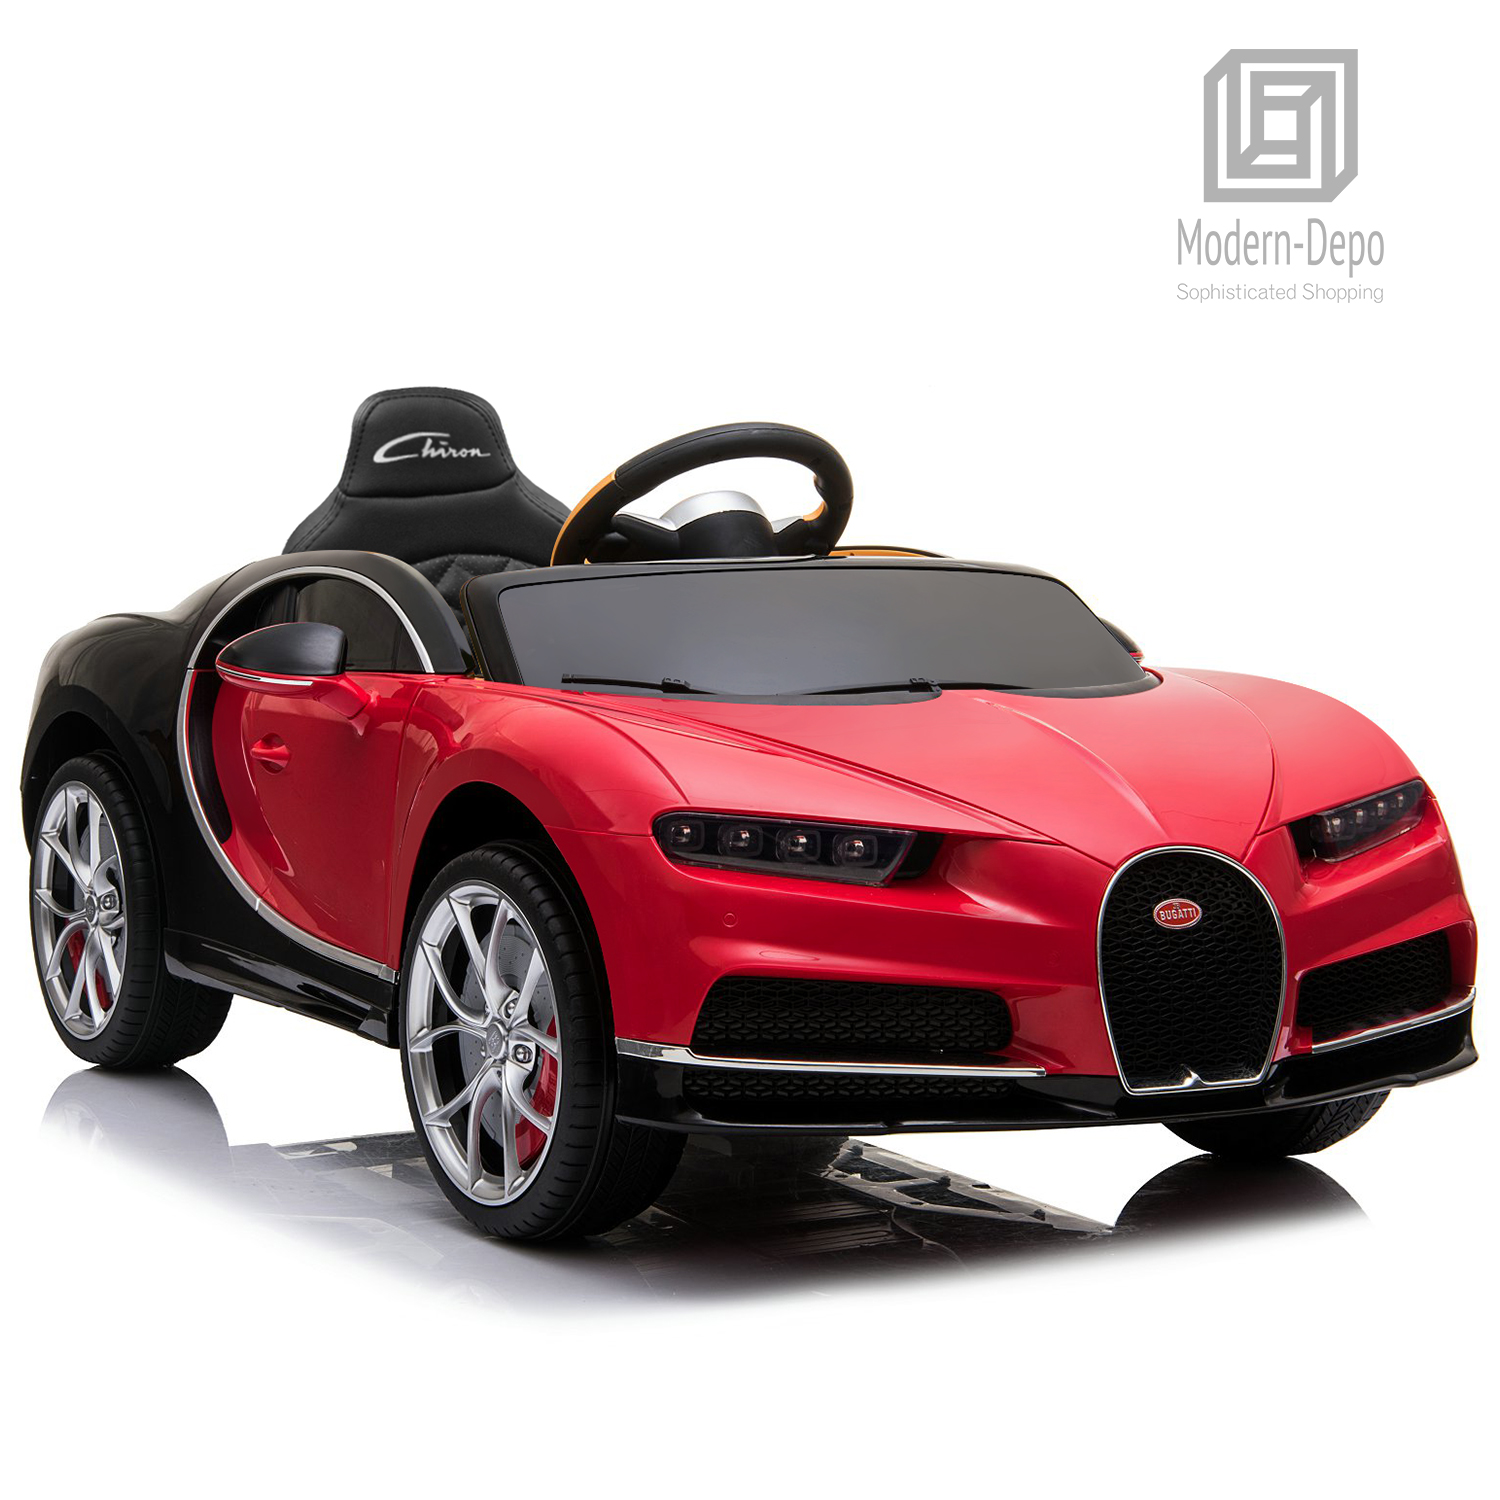 Bugatti-Chiron-12V-Kids-Ride-On-Car-with-Remote-Control-High-Speed-Motor miniature 35